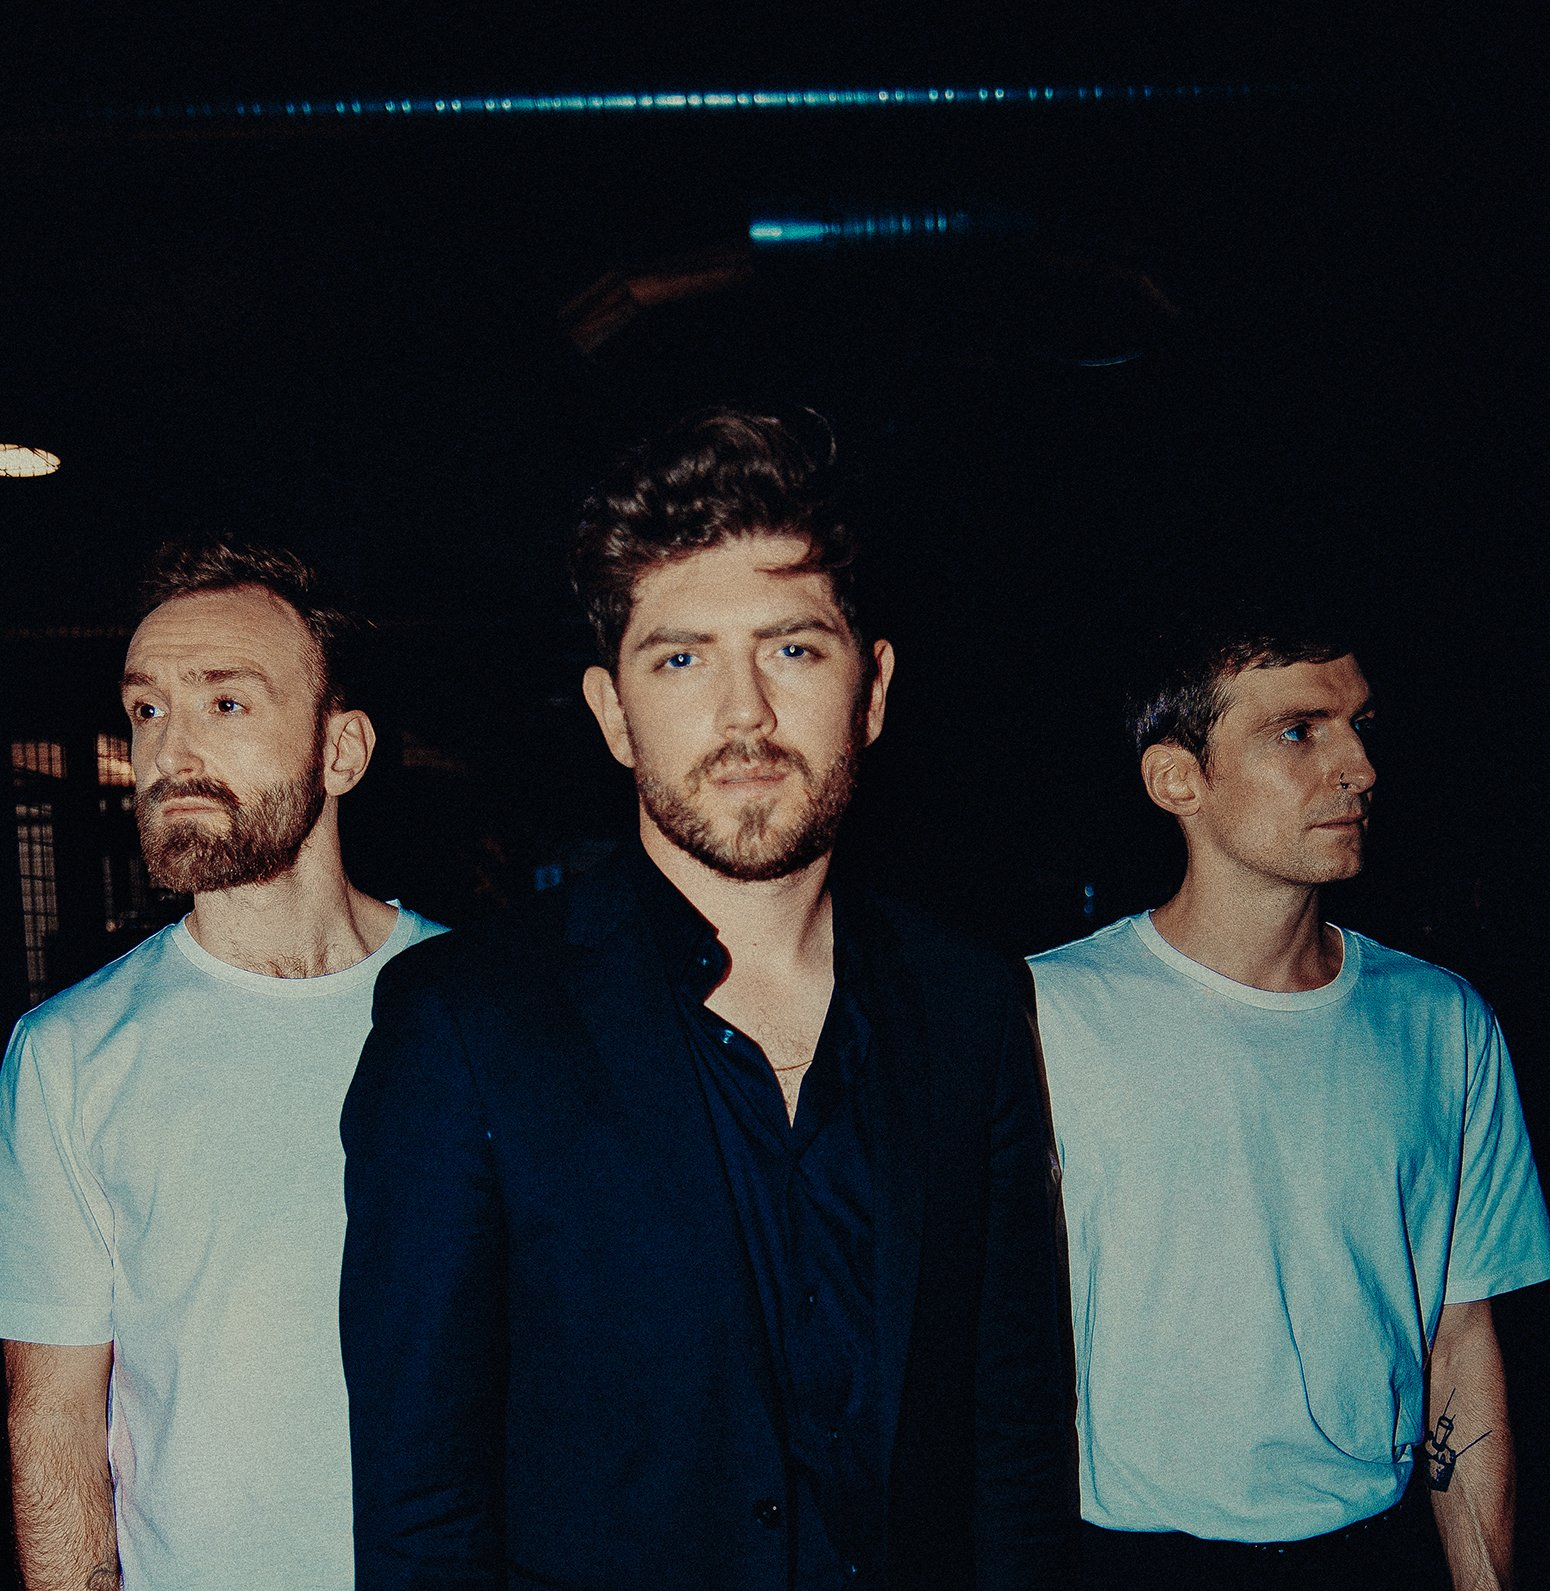 TWIN ATLANTIC return with new album 'POWER' out January 24th